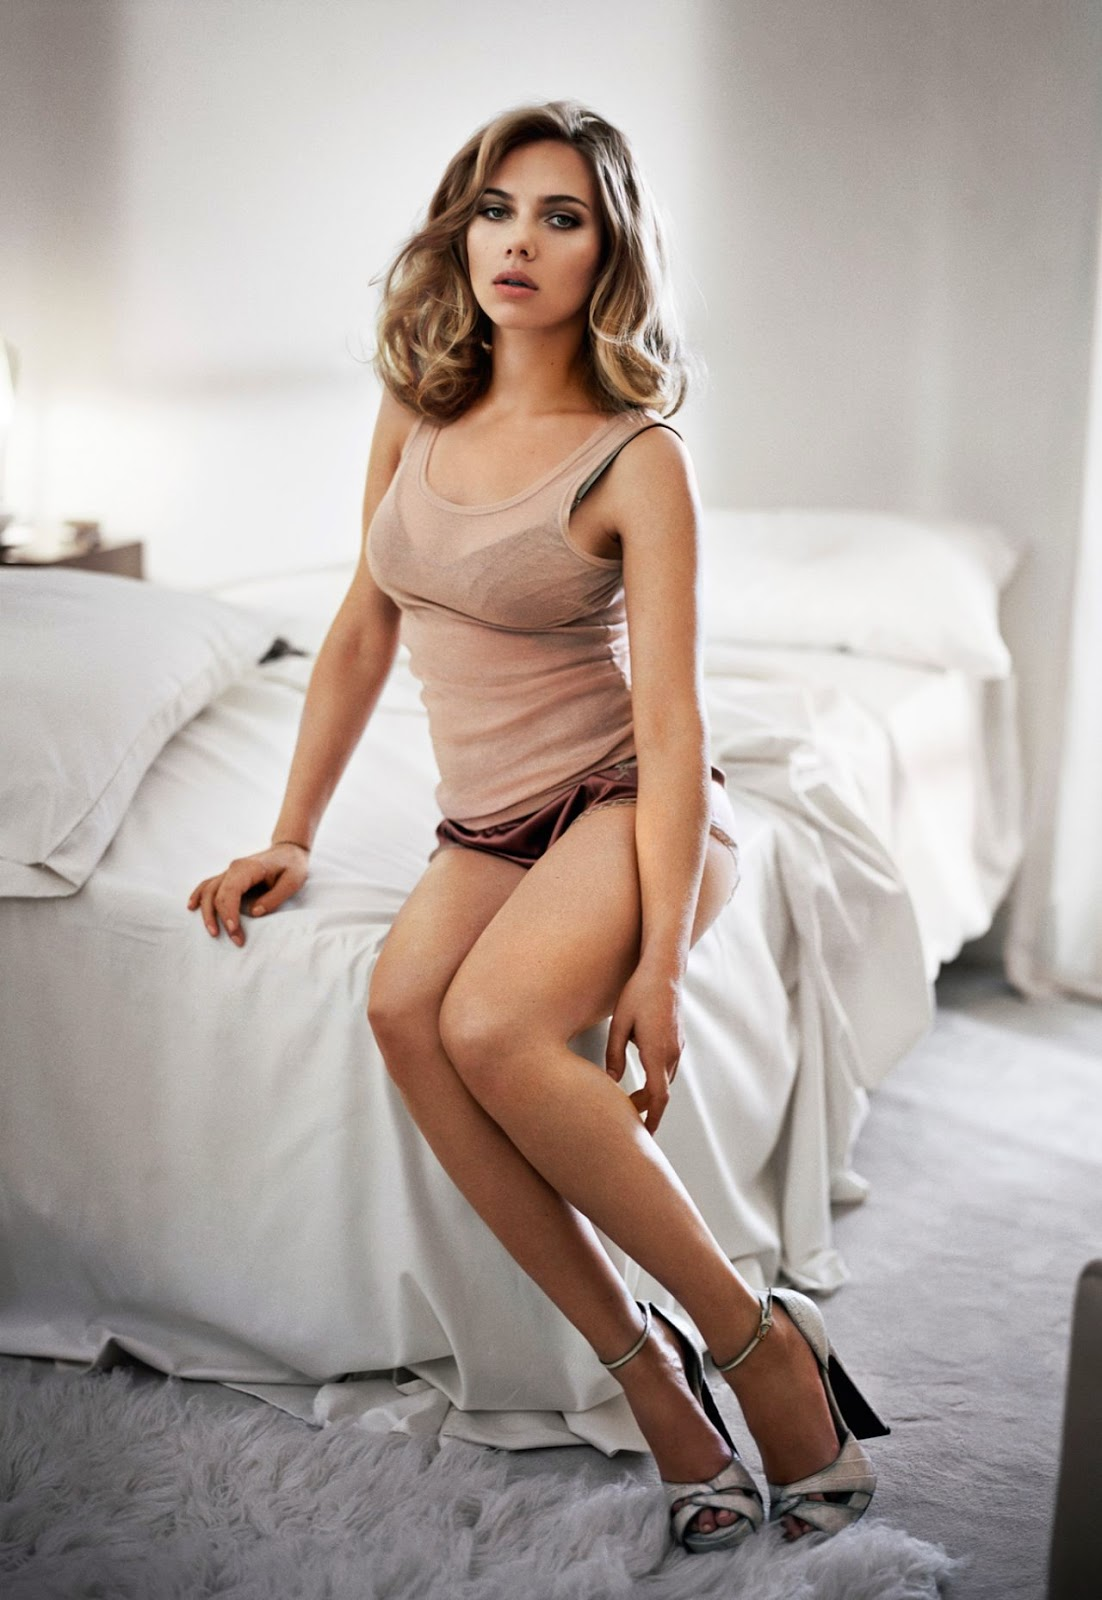 Scarlett johansson hacked cellphone naked selfies daily photo likes